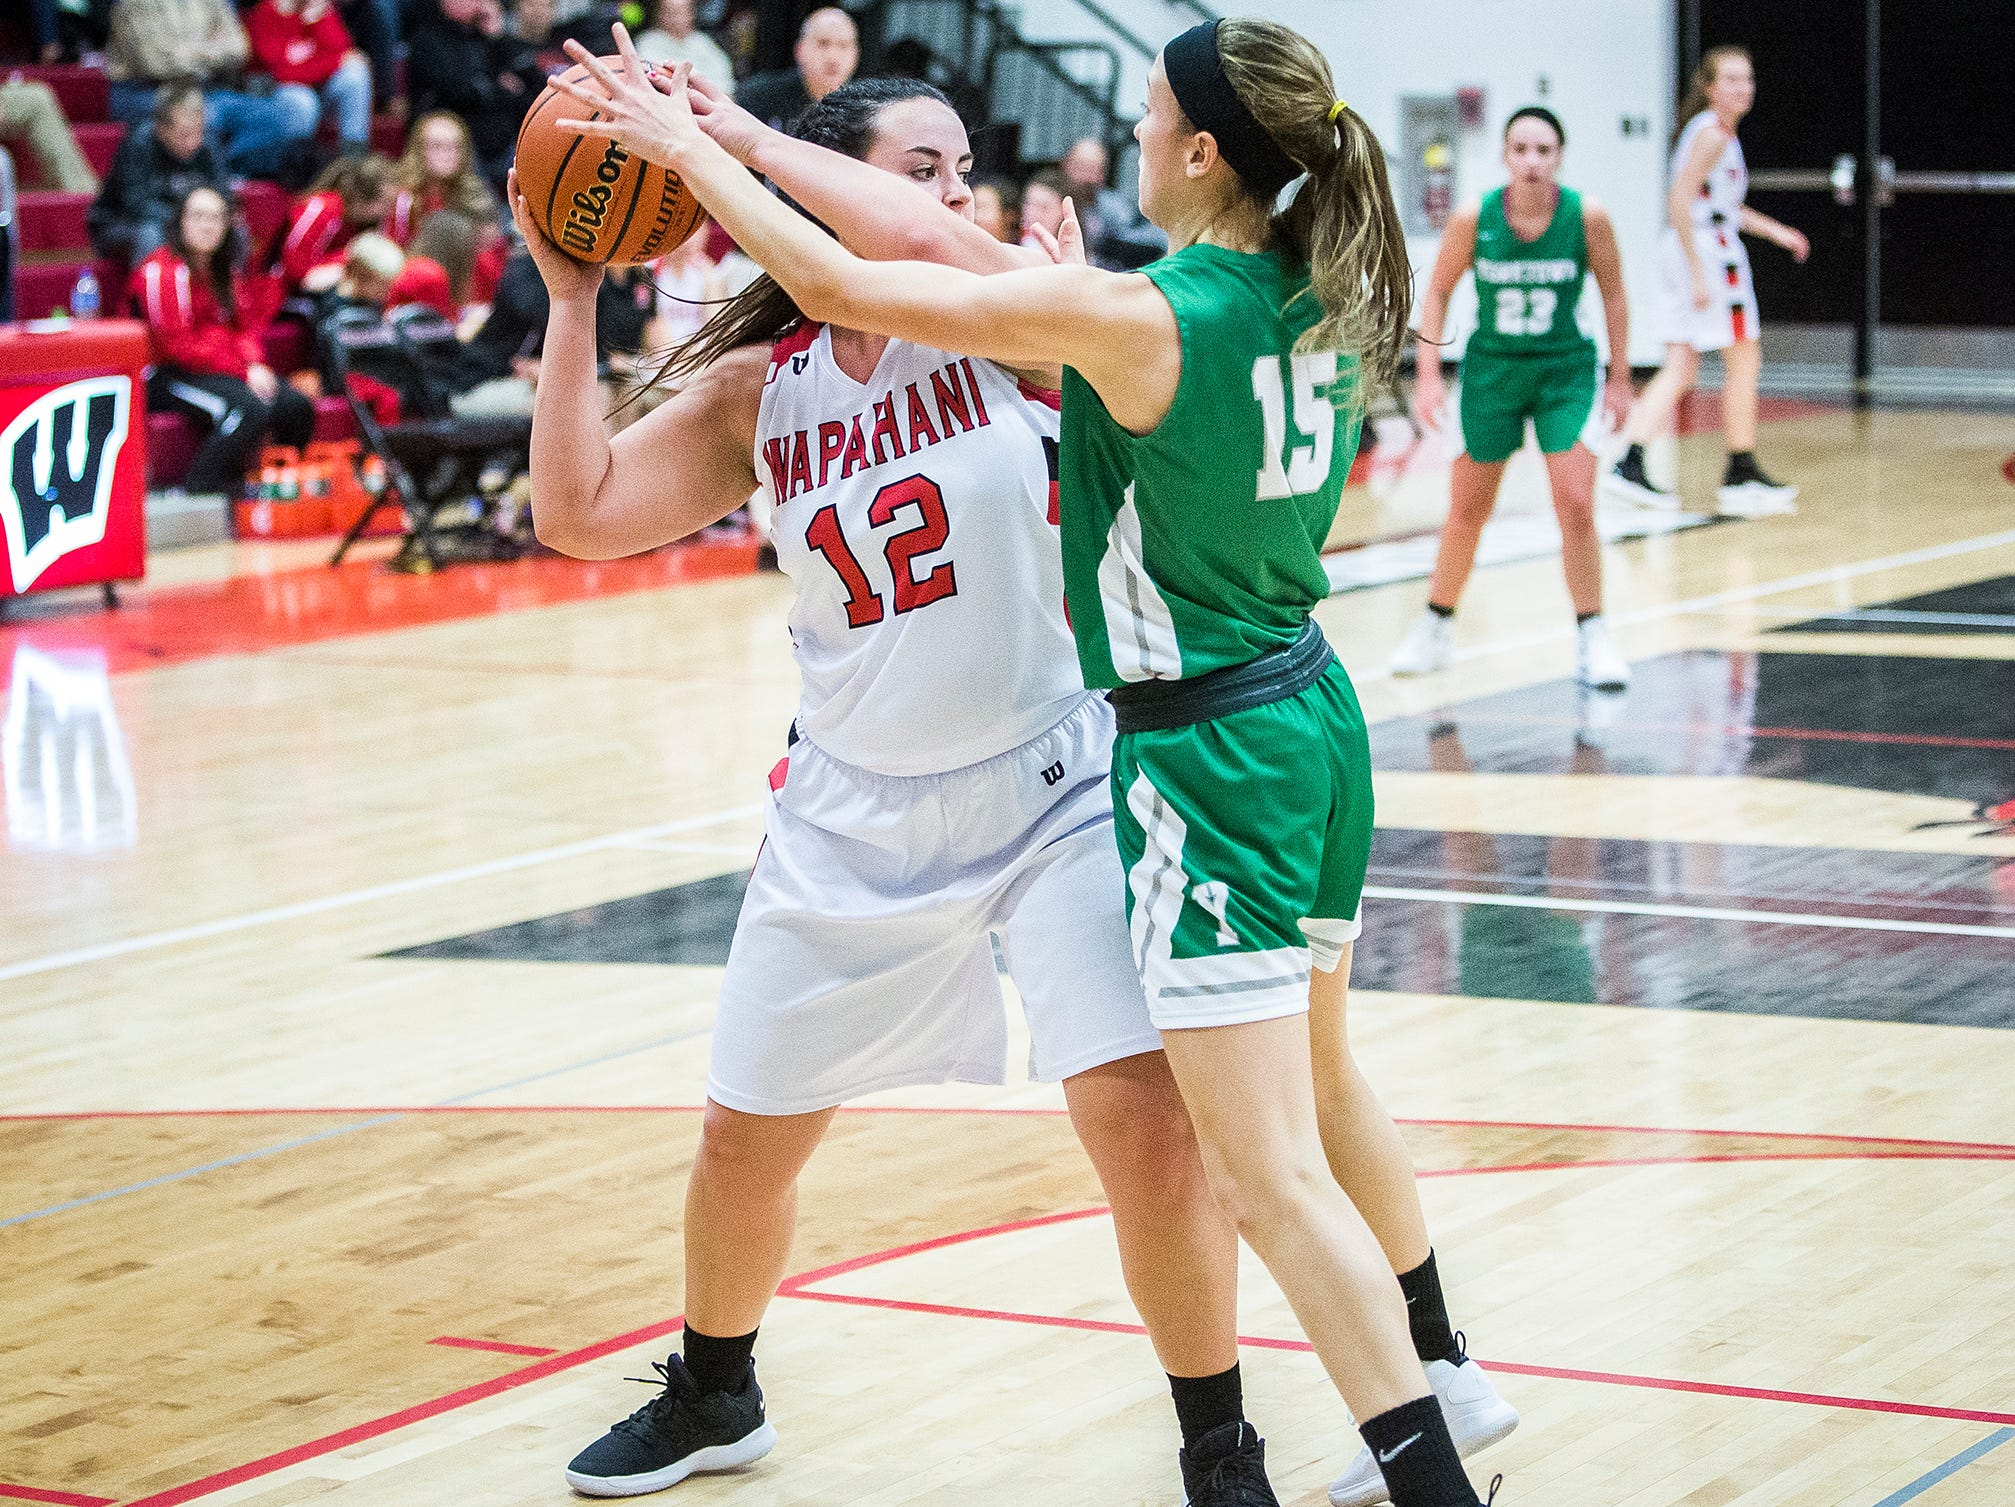 Wapahani's Dayten Lee looks to pass against Yorktown's defense during their game at Wapahani High School Tuesday, Dec. 4, 2018.